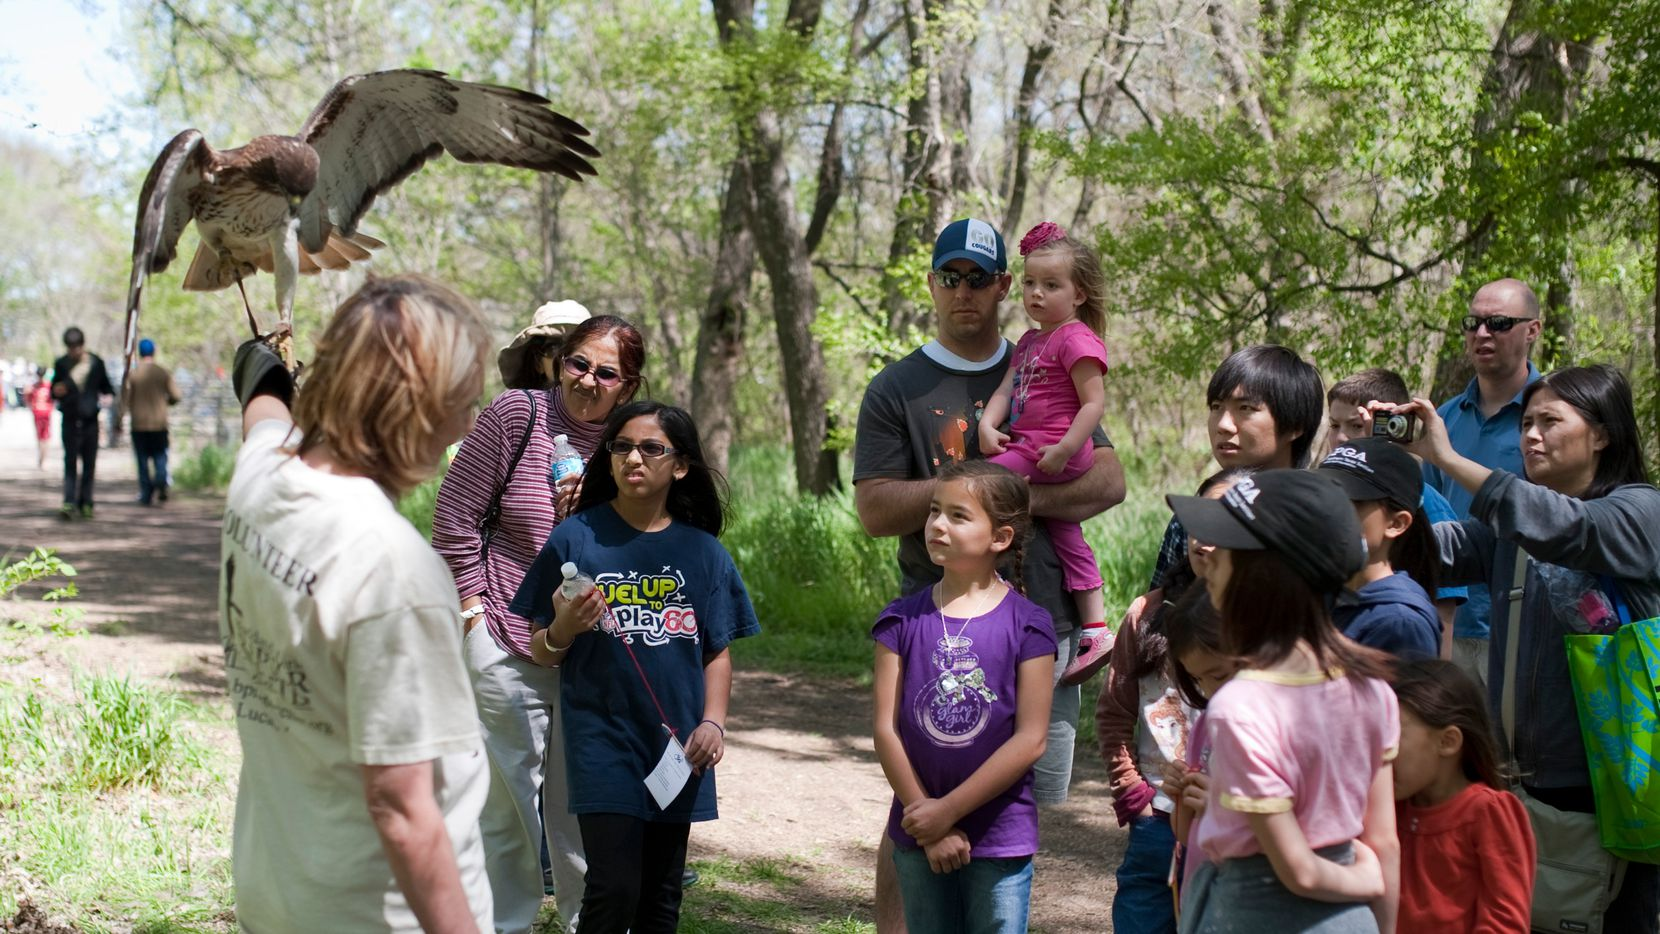 Visitors gather around Kathy Copus of the Blackland Prairie Raptor Center and her red-tailed hawk during EarthFest 2013 in this file photo at the Connemara Meadow Preserve in Allen.